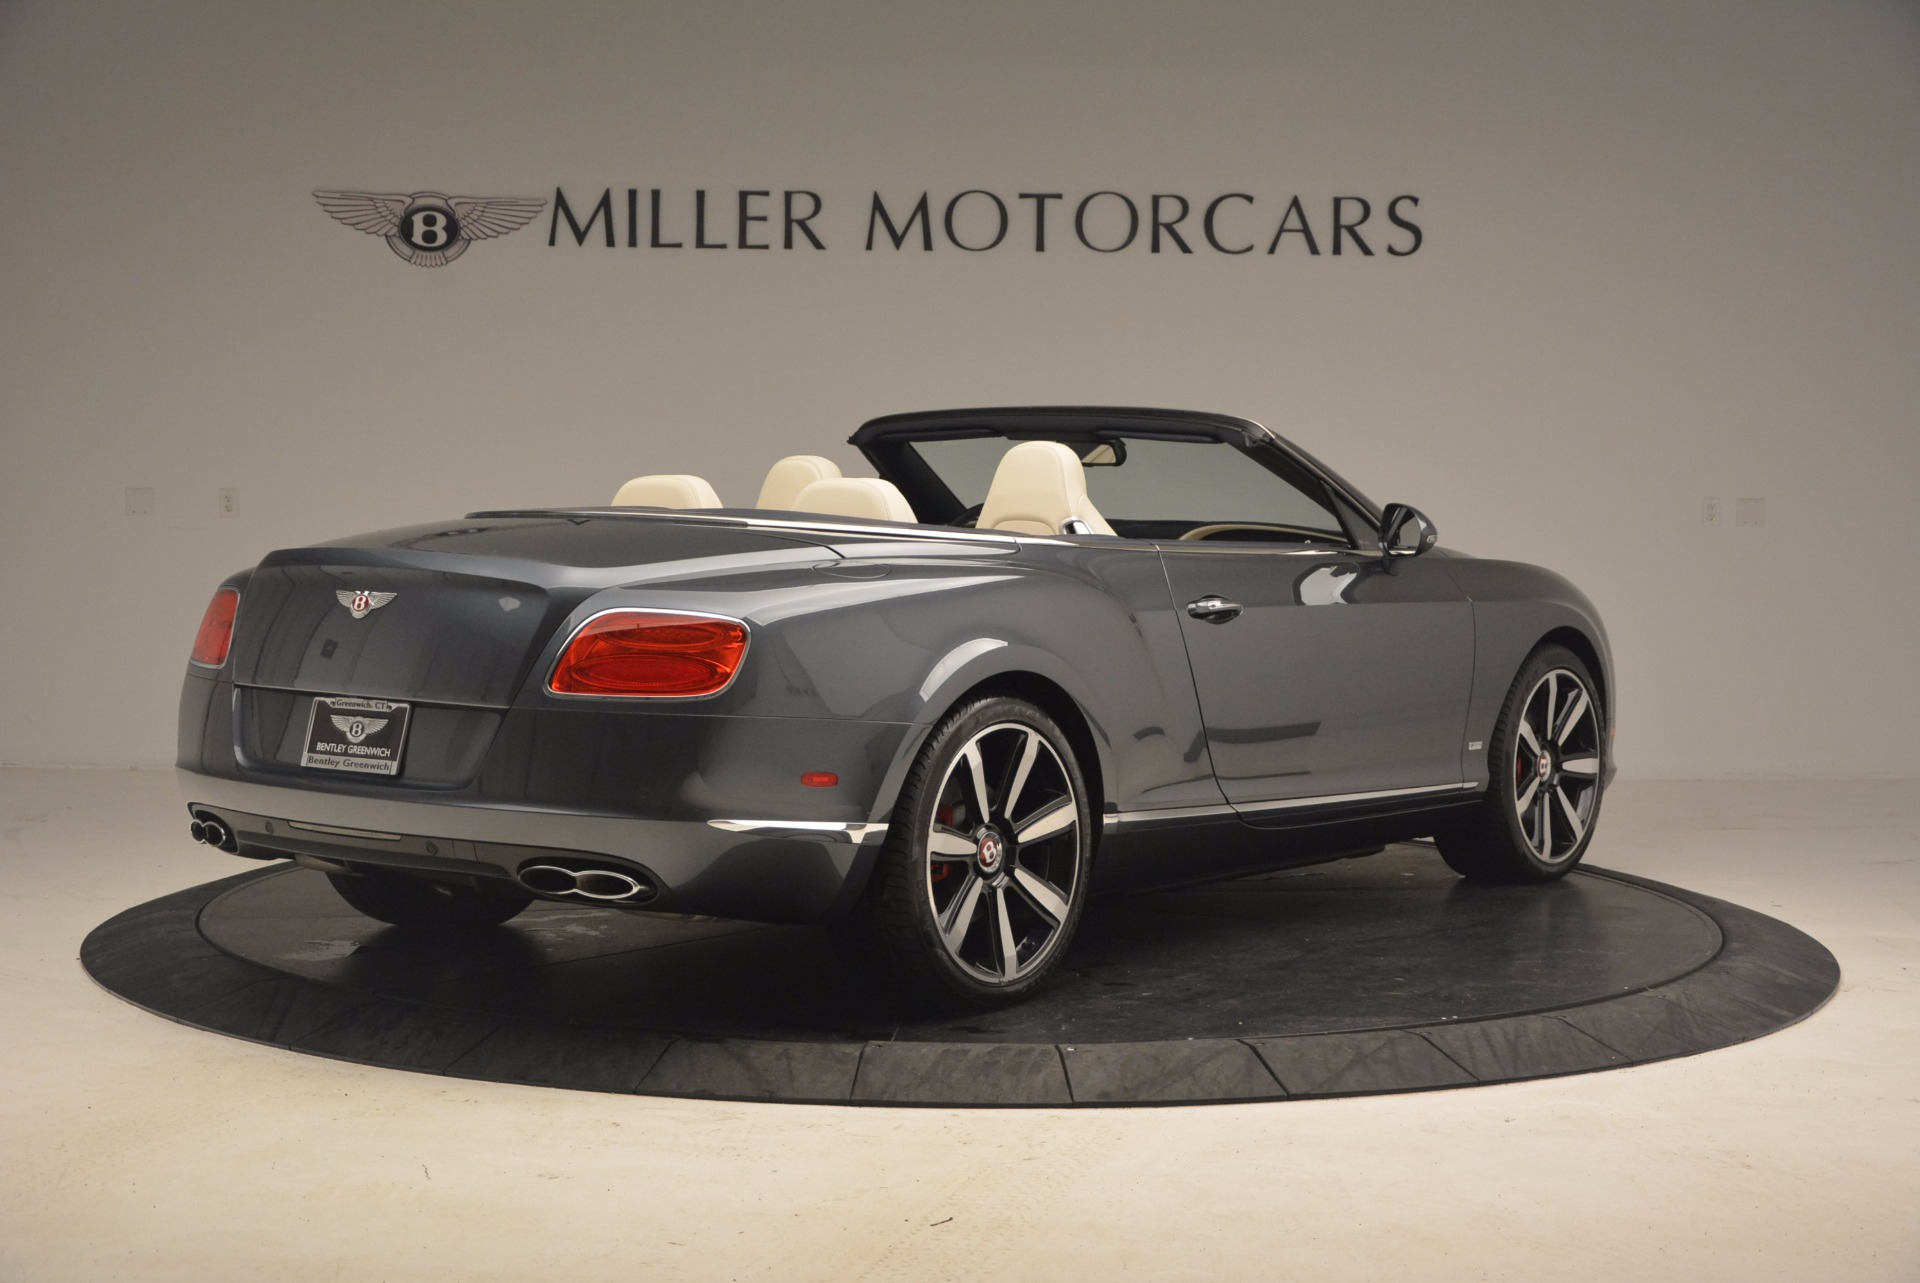 Used 2013 Bentley Continental GT V8 Le Mans Edition, 1 of 48 For Sale In Greenwich, CT. Alfa Romeo of Greenwich, 7226 1288_p8